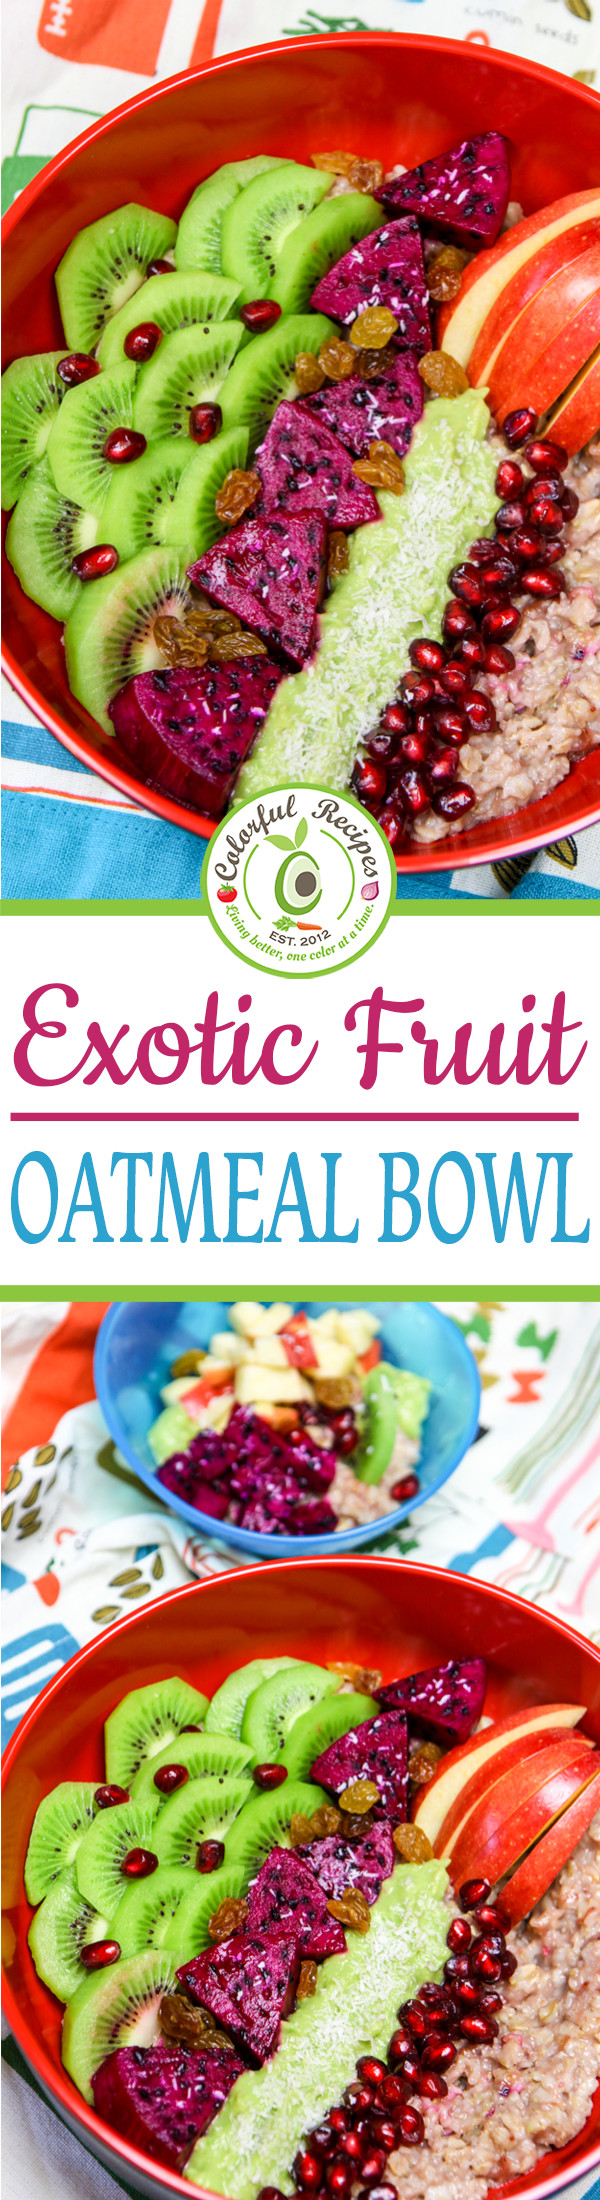 exotic-fruit-oatmeal-bowl-4